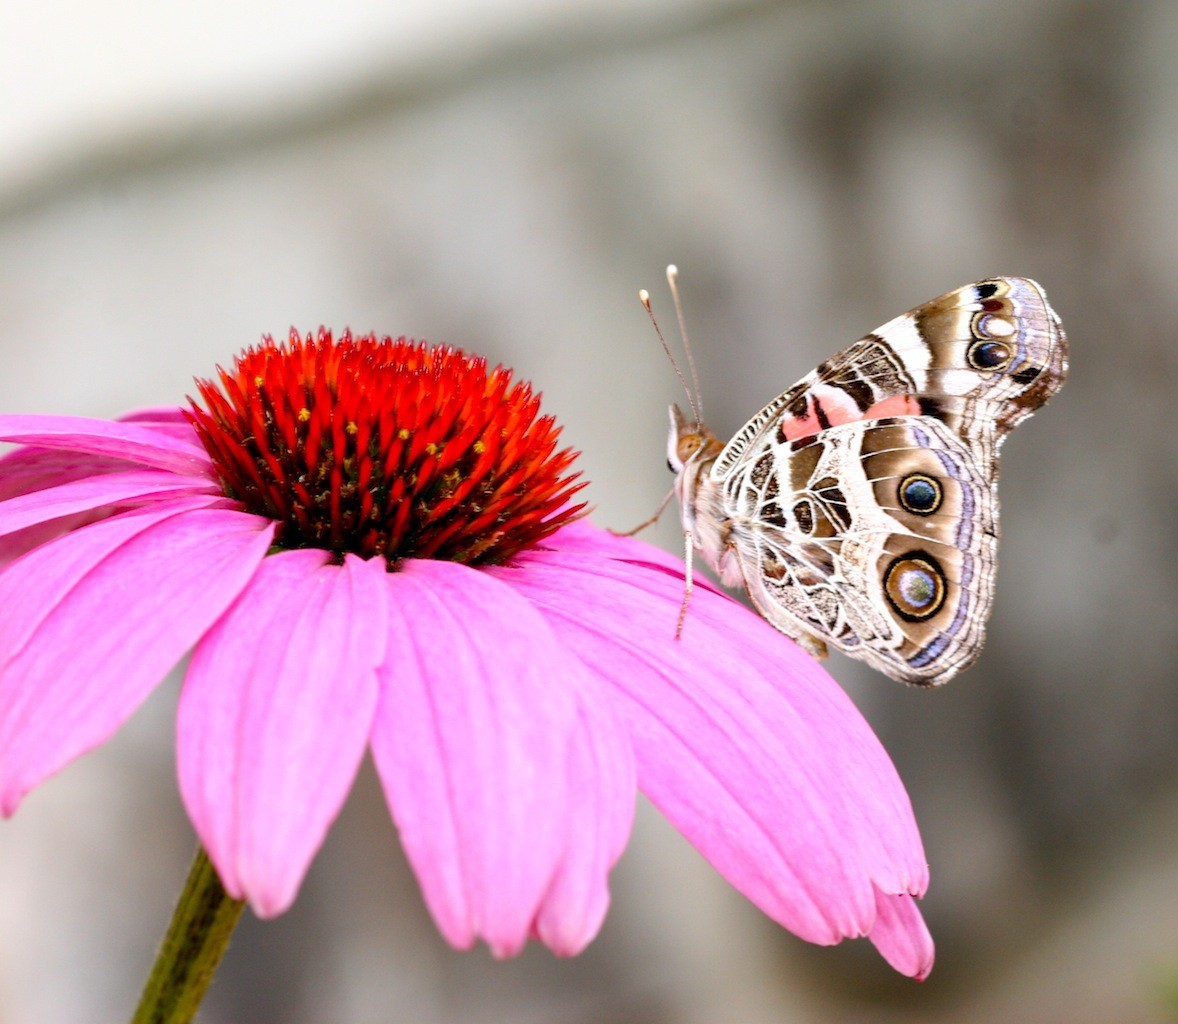 Pink Butterfly And White Flowers 2184205 Hd Wallpaper